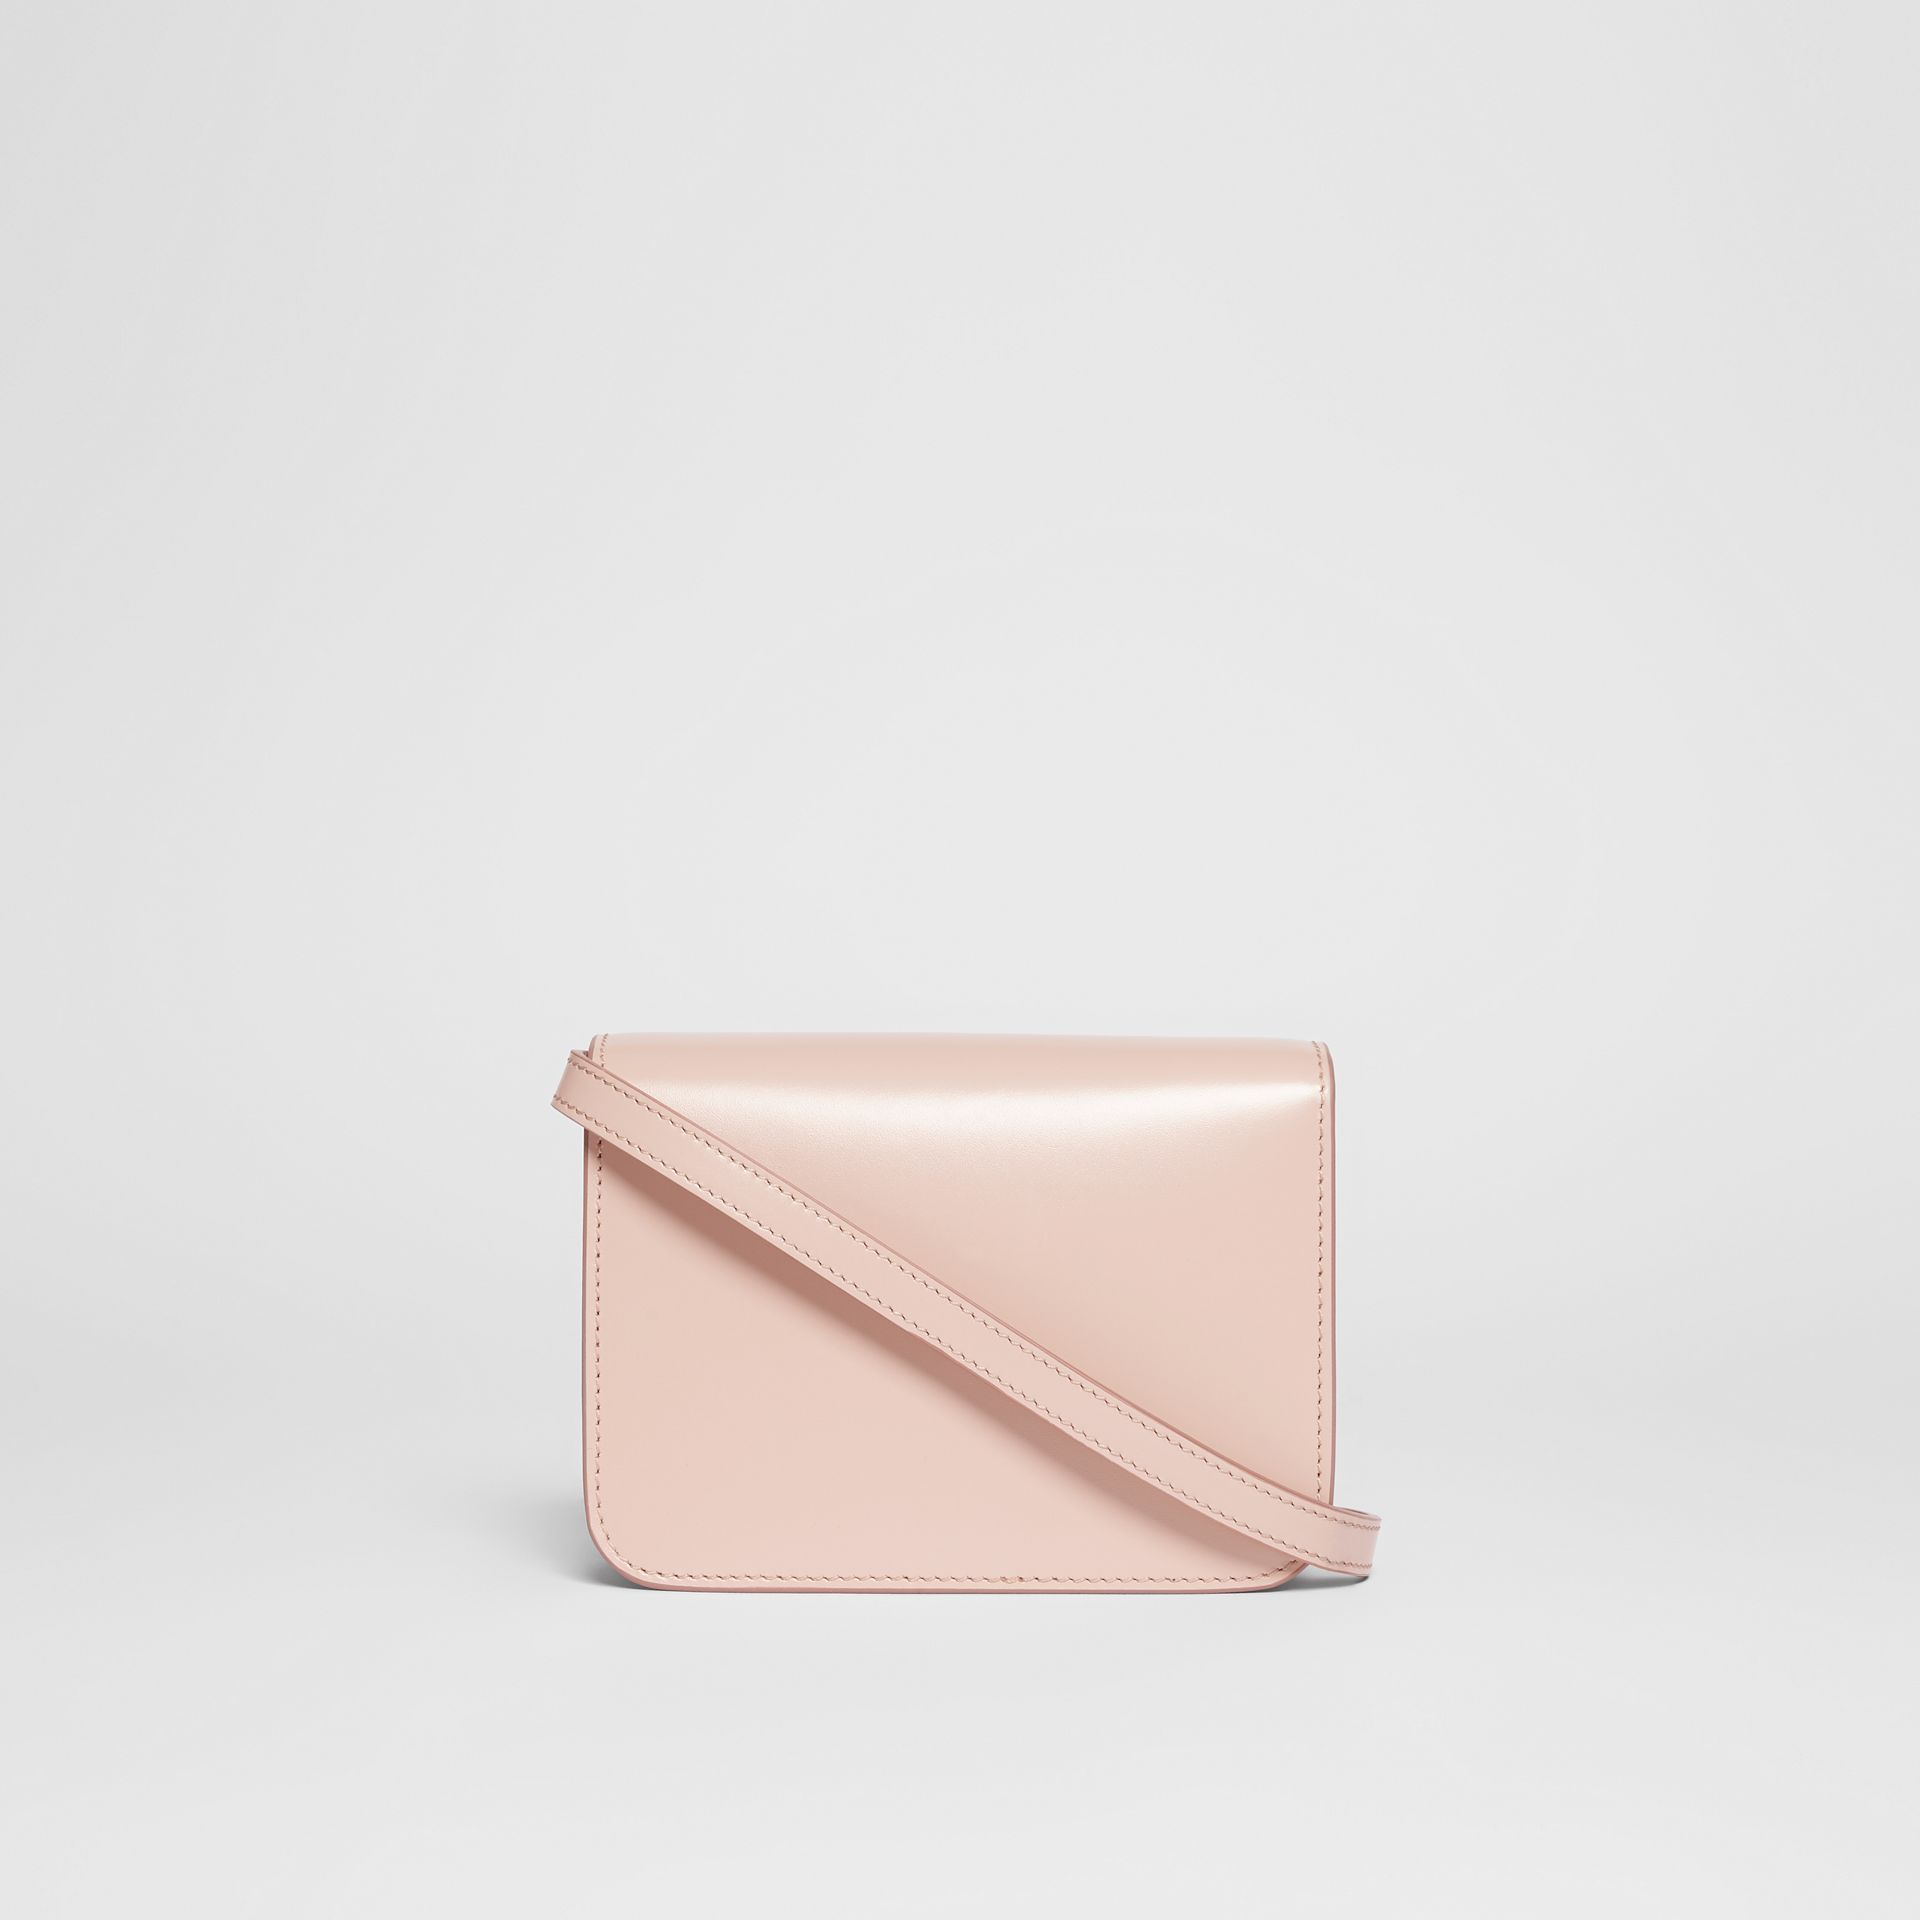 Mini Leather TB Bag in Rose Beige - Women | Burberry - gallery image 7